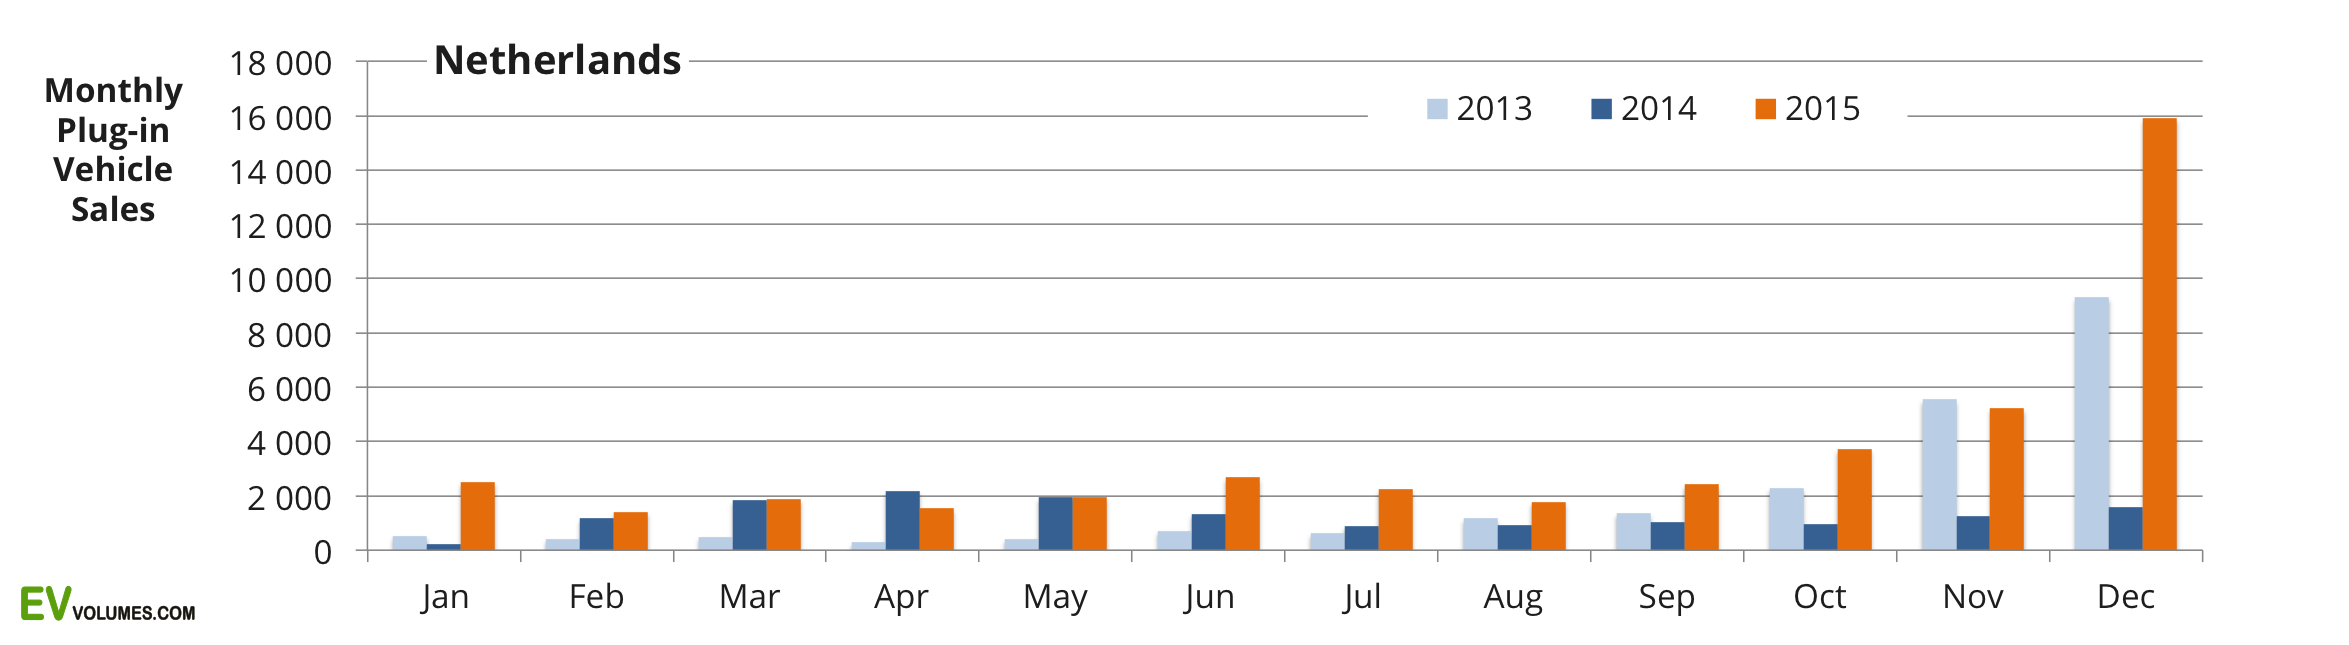 first The Netherlands – 2015-Q4 & Full Year image